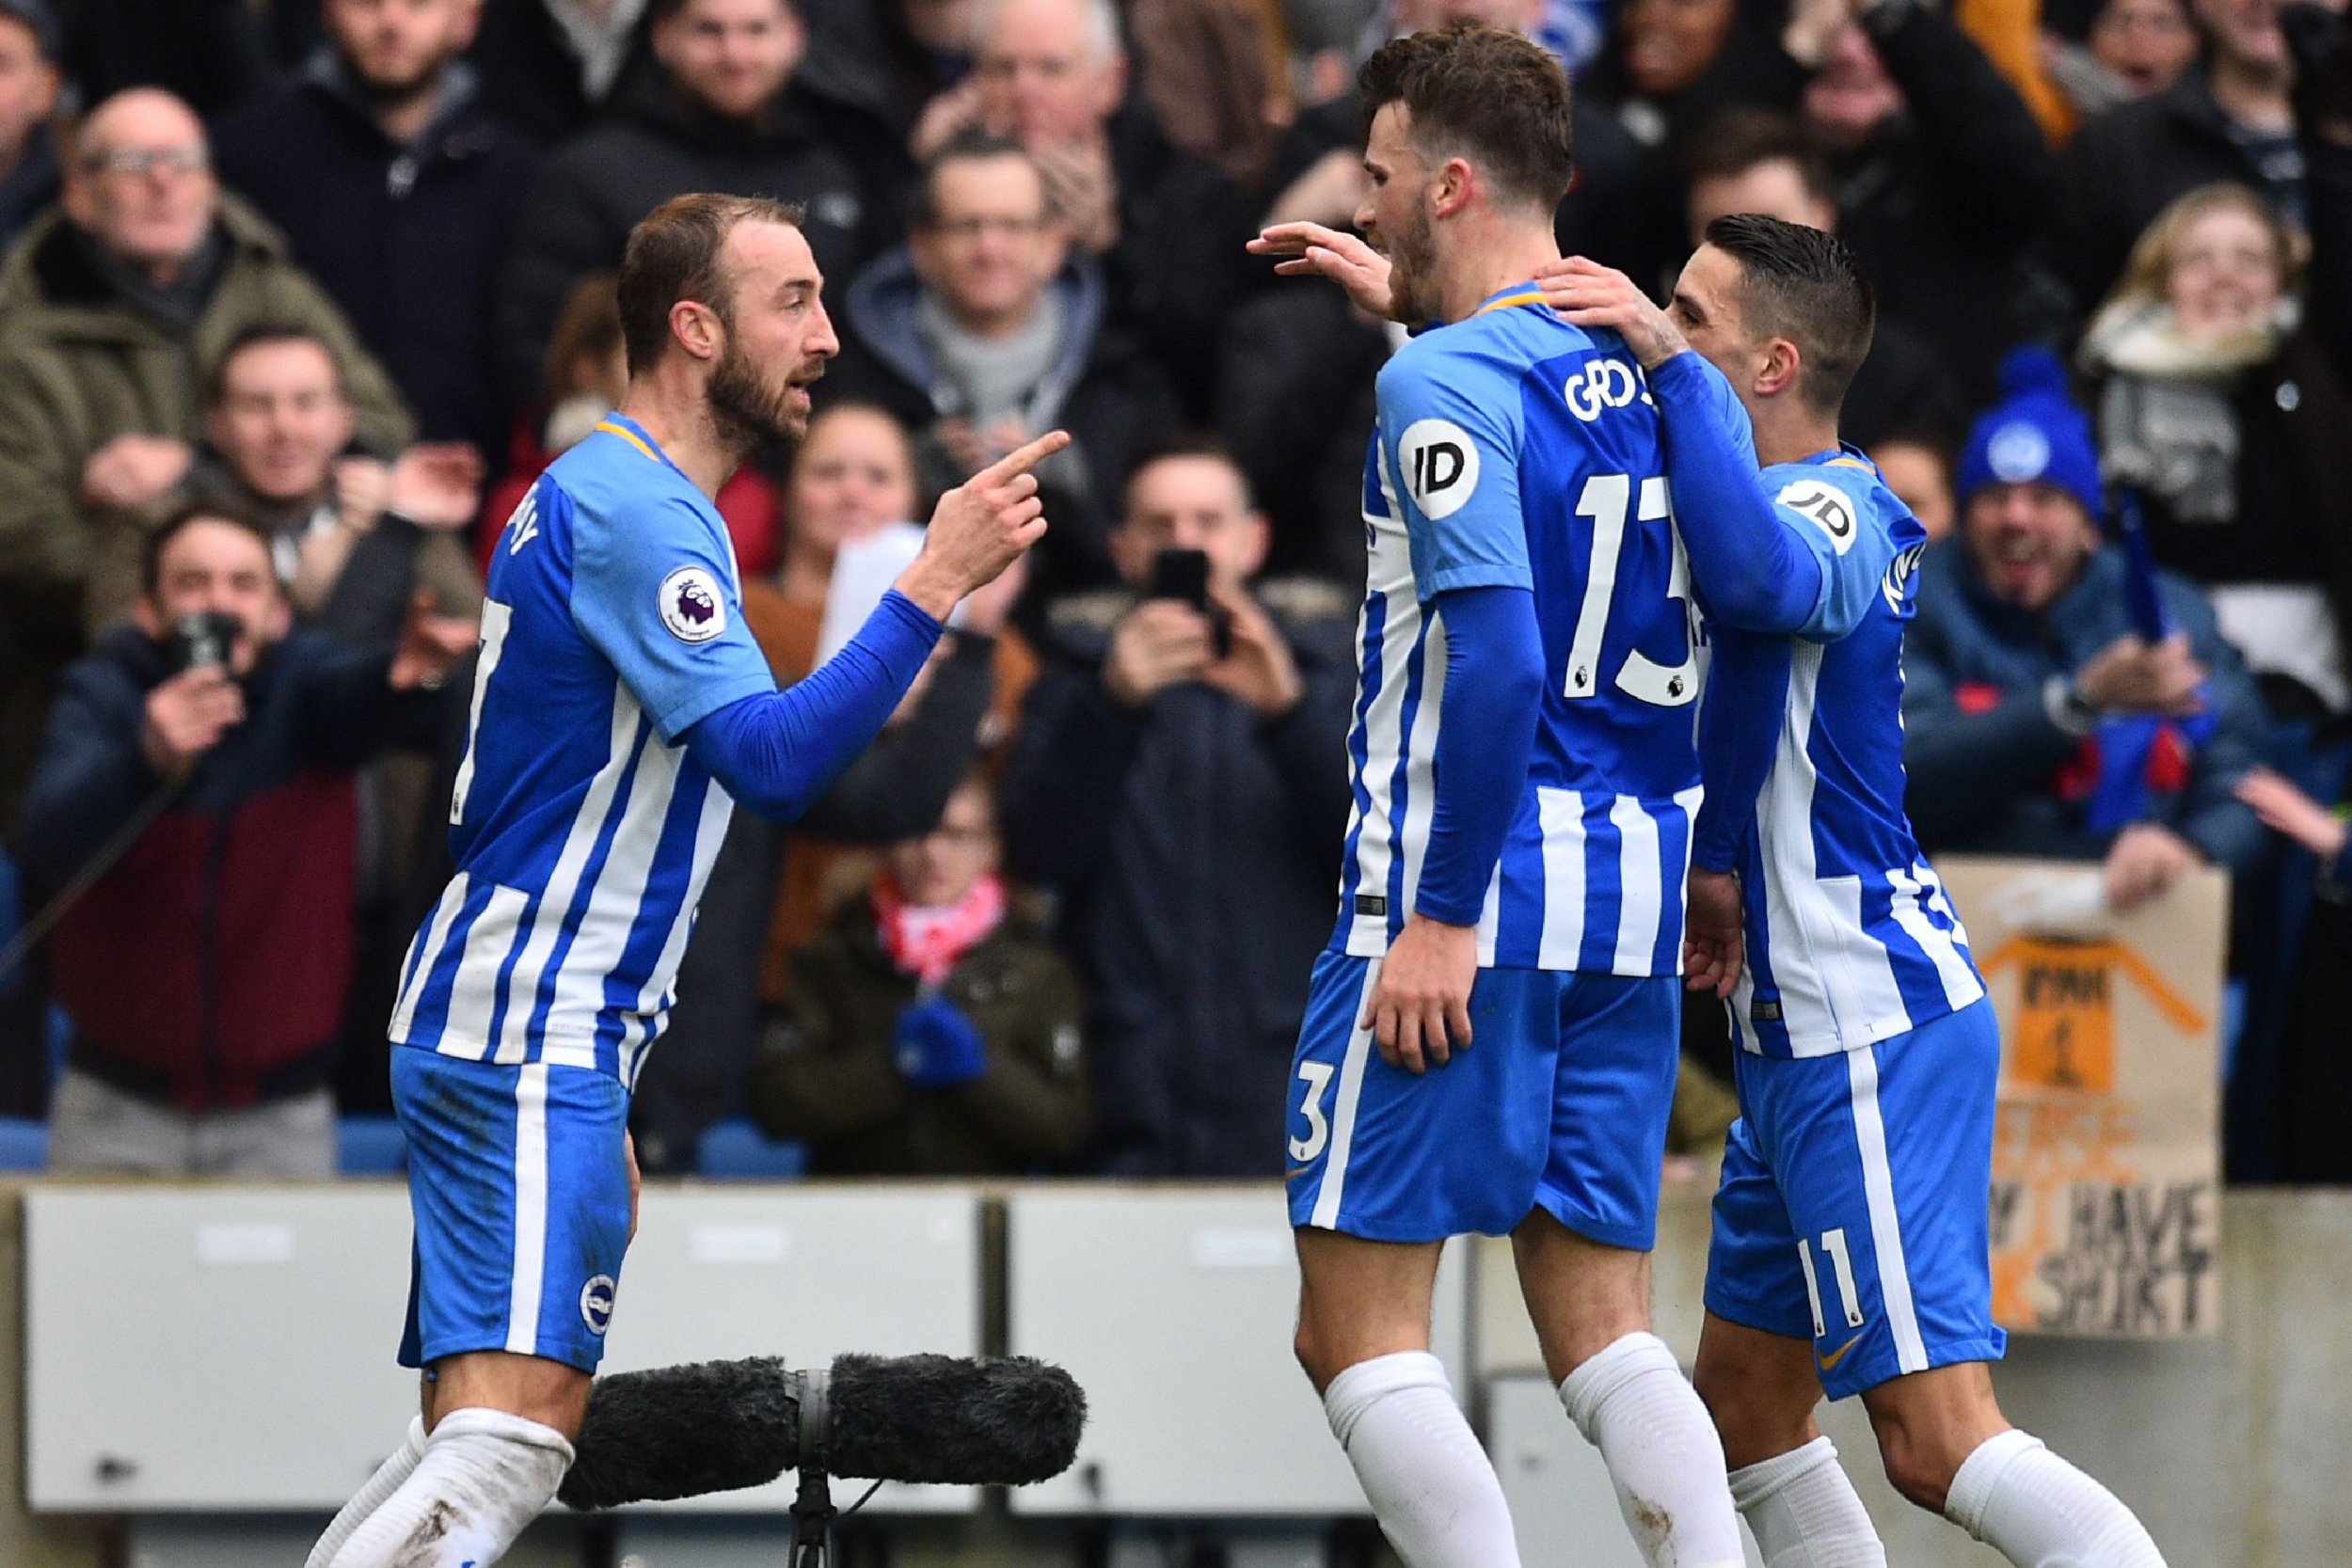 Brighton's English striker Glenn Murray (L) celebrates with teammates after scoring their second goal during the English Premier League football match between Brighton and Hove Albion and Arsenal at the American Express Community Stadium in Brighton, southern England on March 4, 2018. / AFP PHOTO / Glyn KIRK / RESTRICTED TO EDITORIAL USE. No use with unauthorized audio, video, data, fixture lists, club/league logos or 'live' services. Online in-match use limited to 75 images, no video emulation. No use in betting, games or single club/league/player publications. / GLYN KIRK/AFP/Getty Images